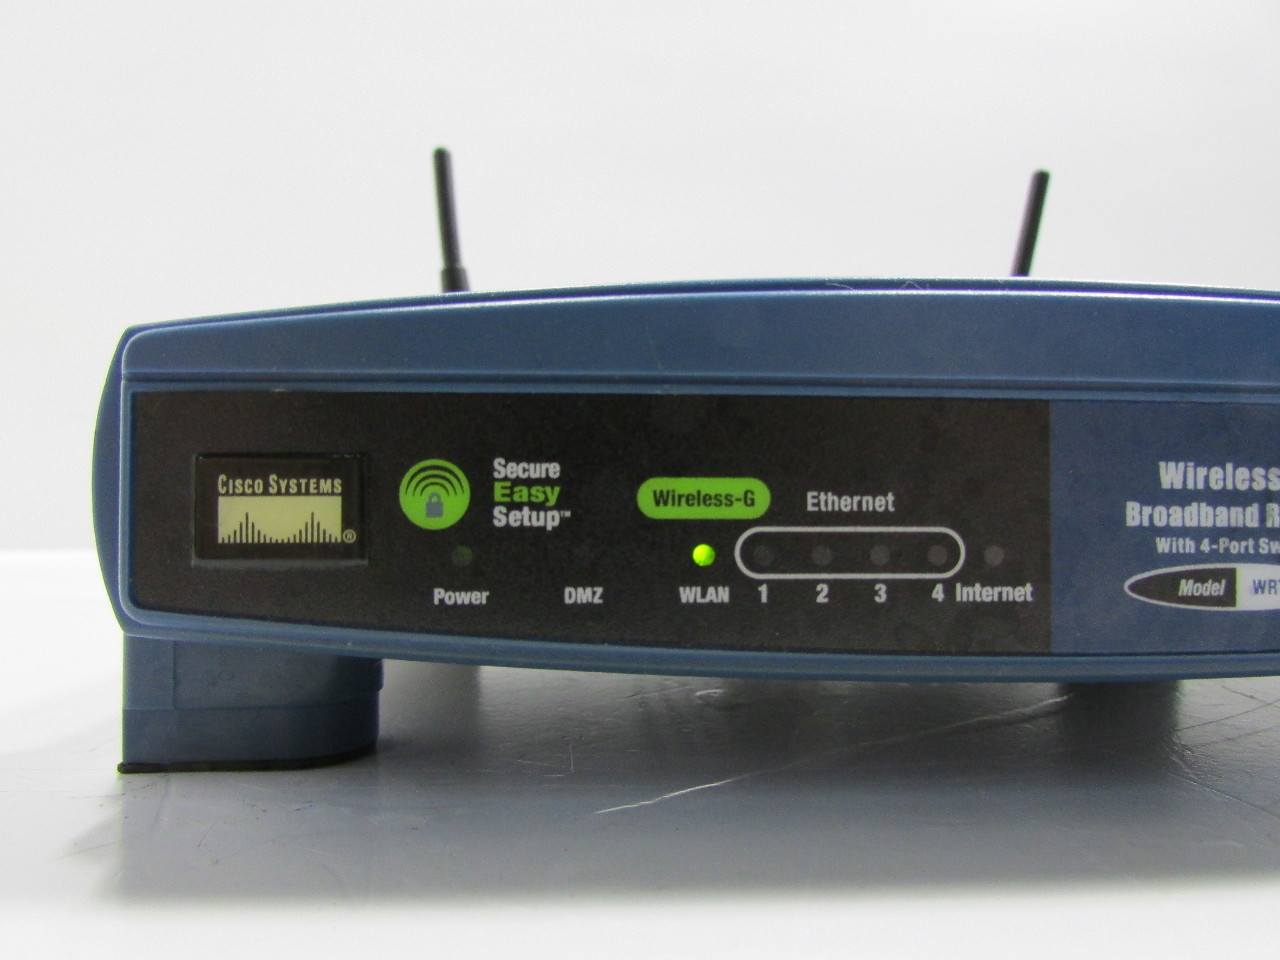 Software for Wireless-G 2.4 GHZ router